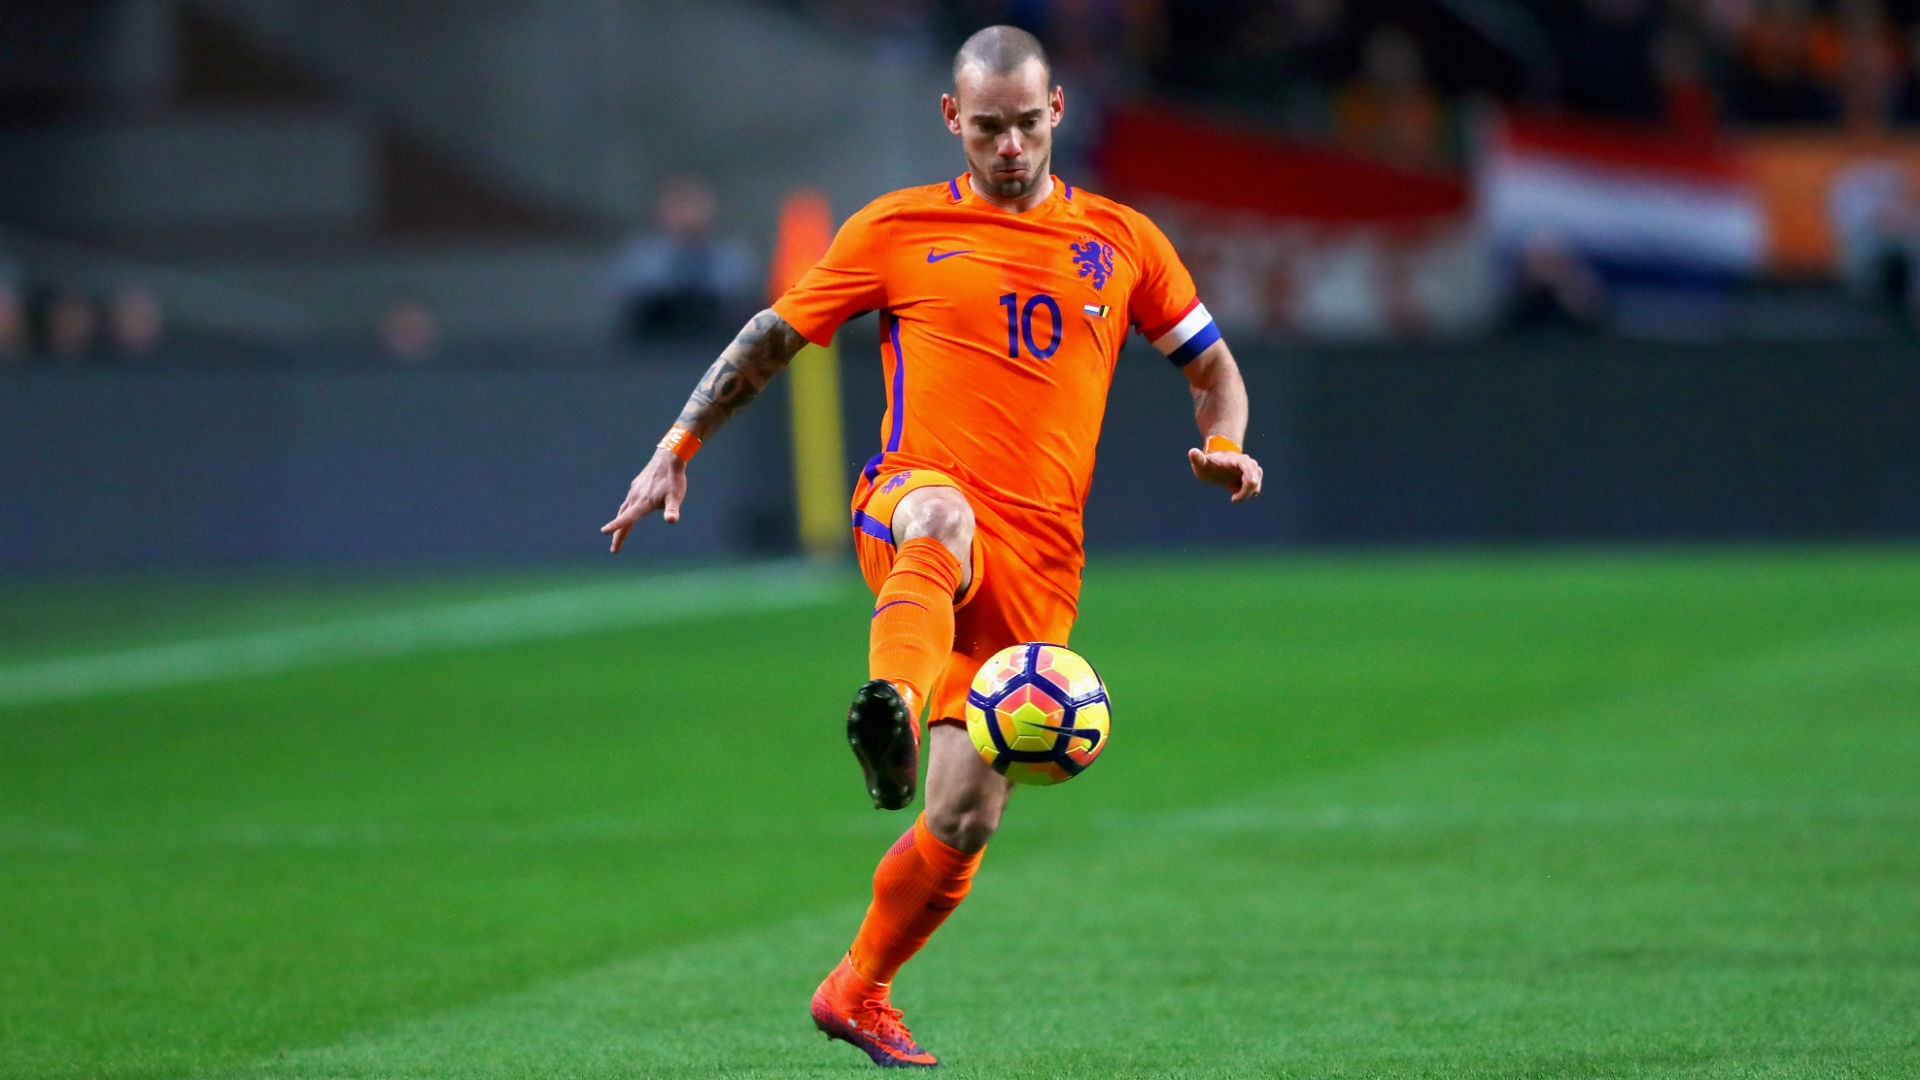 Sneijder to become Netherlands highest capped player